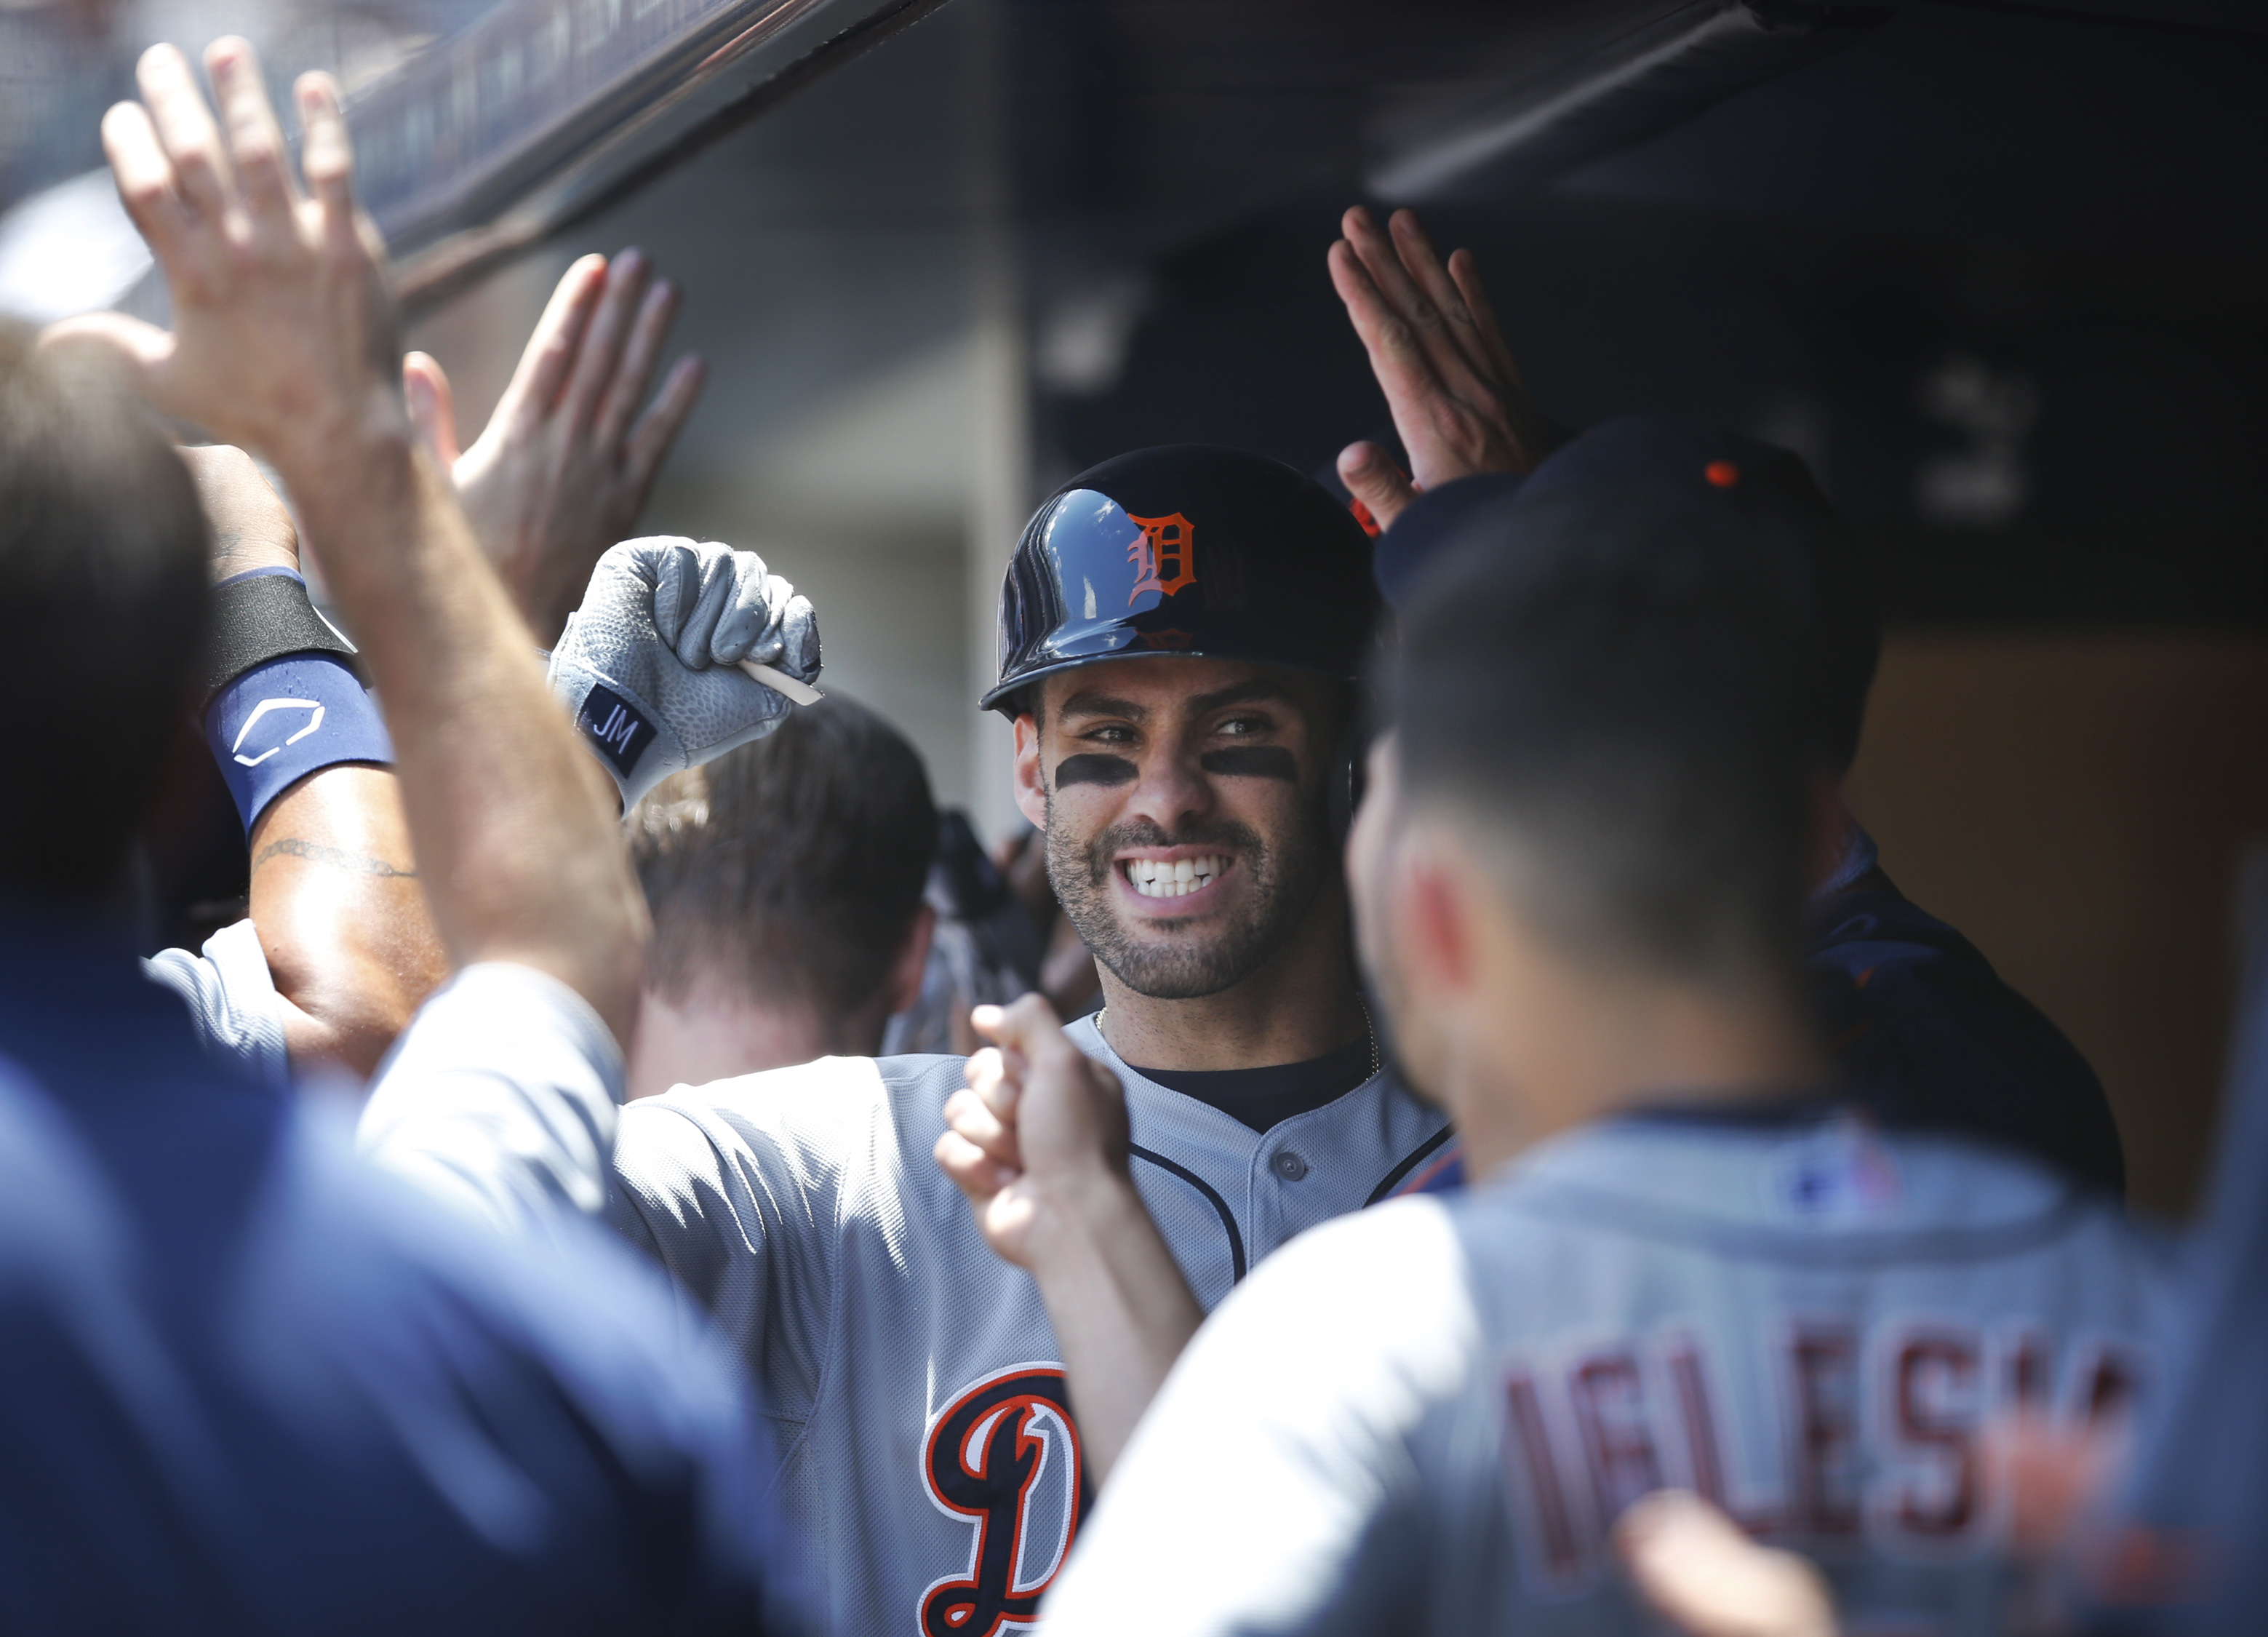 Teammates congratulate Detroit Tigers J.D. Martinez, center, after he hit a first-inning, two-run home run off New York Yankees starting pitcher Masahiro Tanaka in a baseball game at Yankee Stadium in New York, Sunday, June 21, 2015. (AP Photo/Kathy Wille